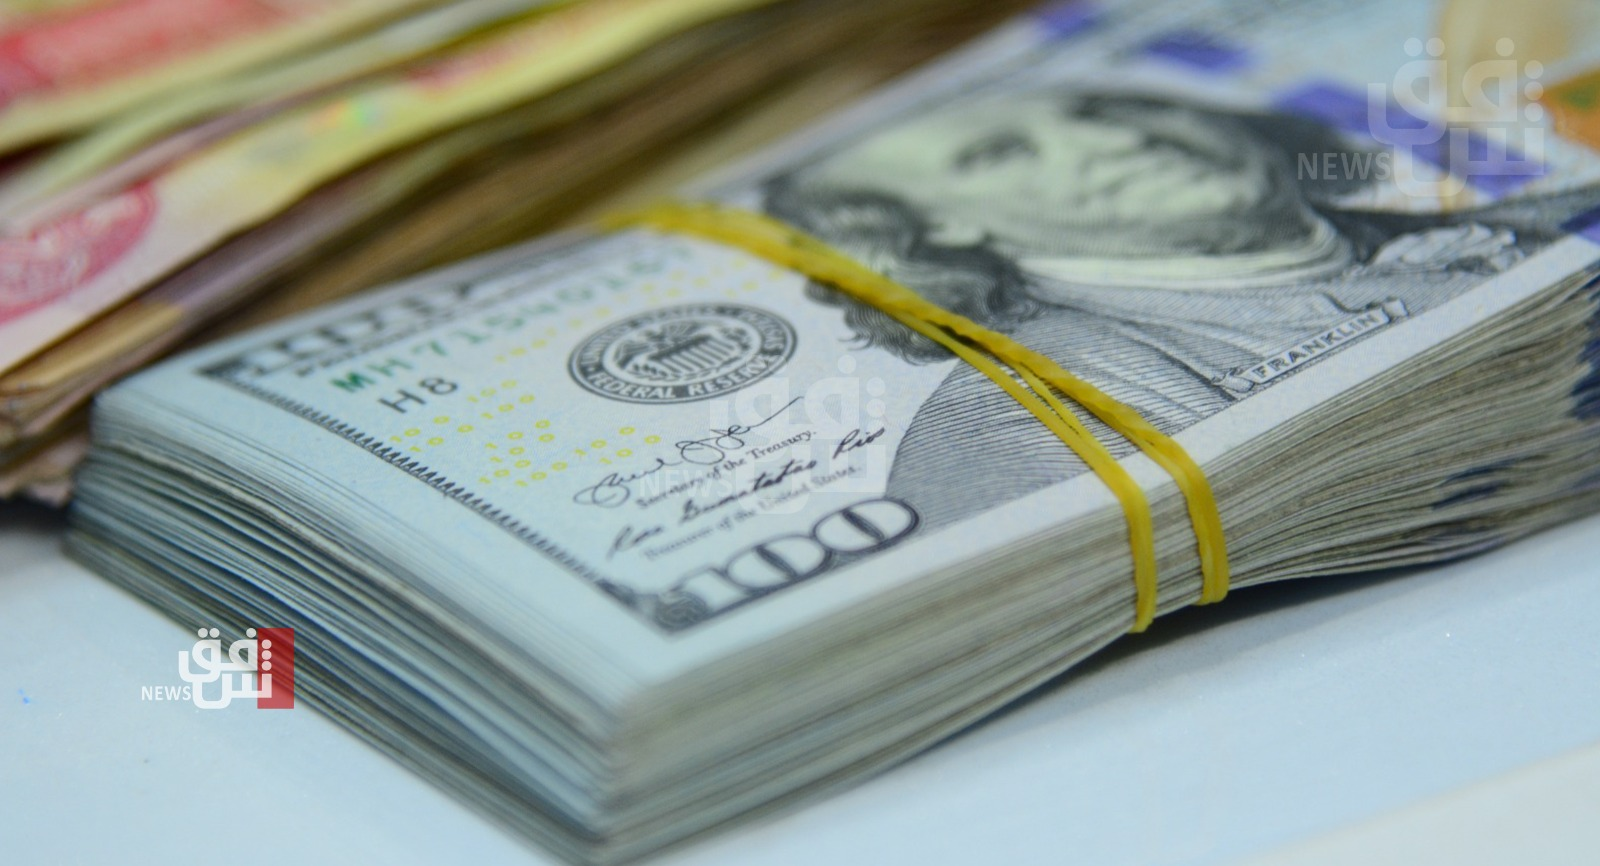 For the third day in a row, CBI sales in the currency auction continue to decline